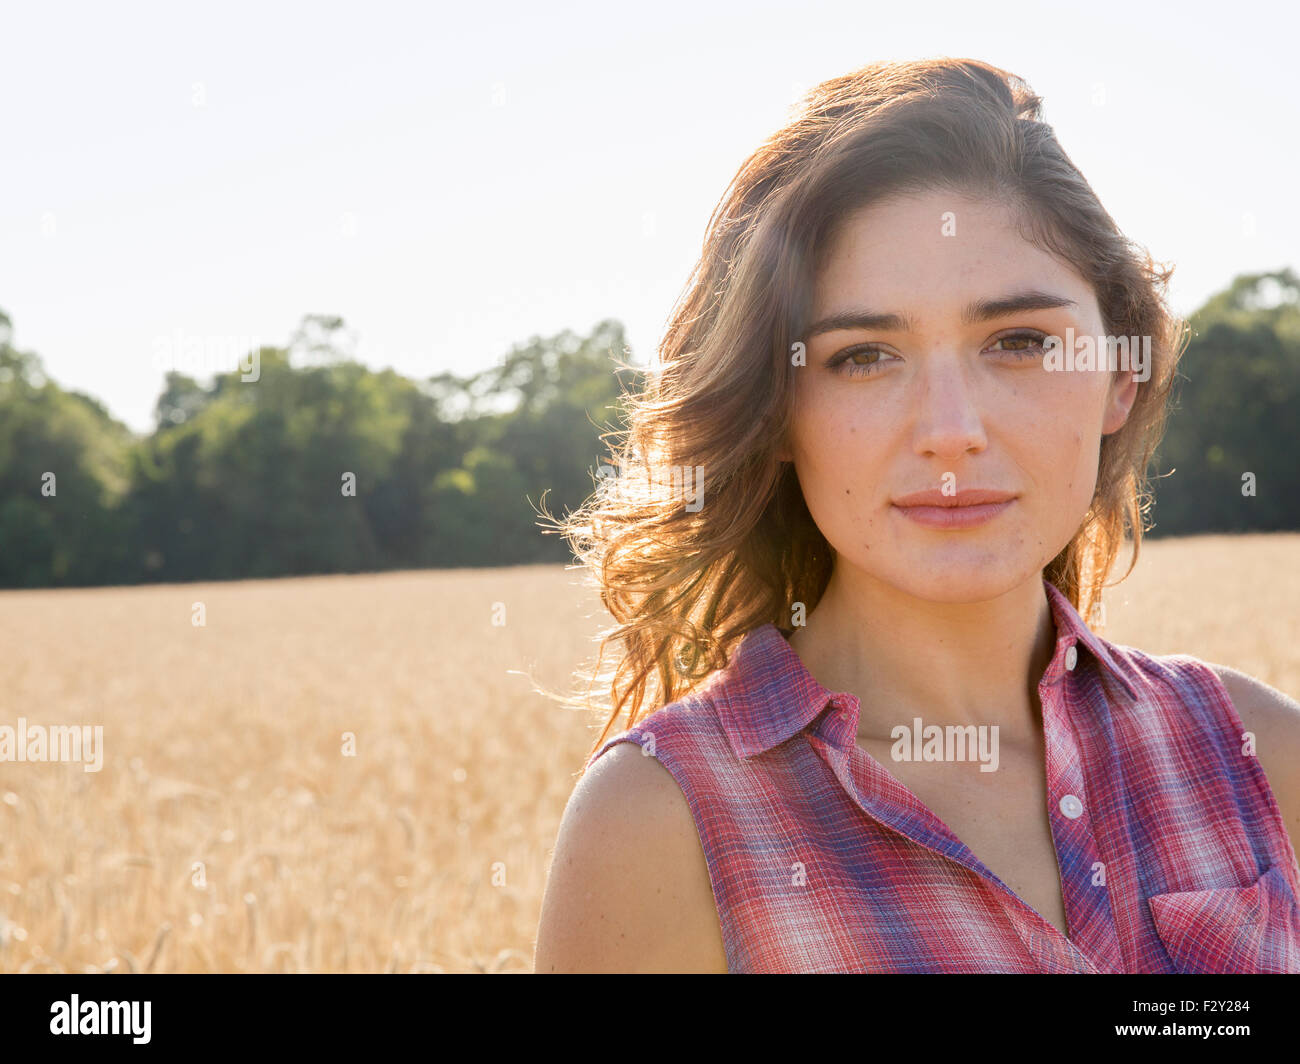 A young woman standing in a field of tall ripe corn. - Stock Image